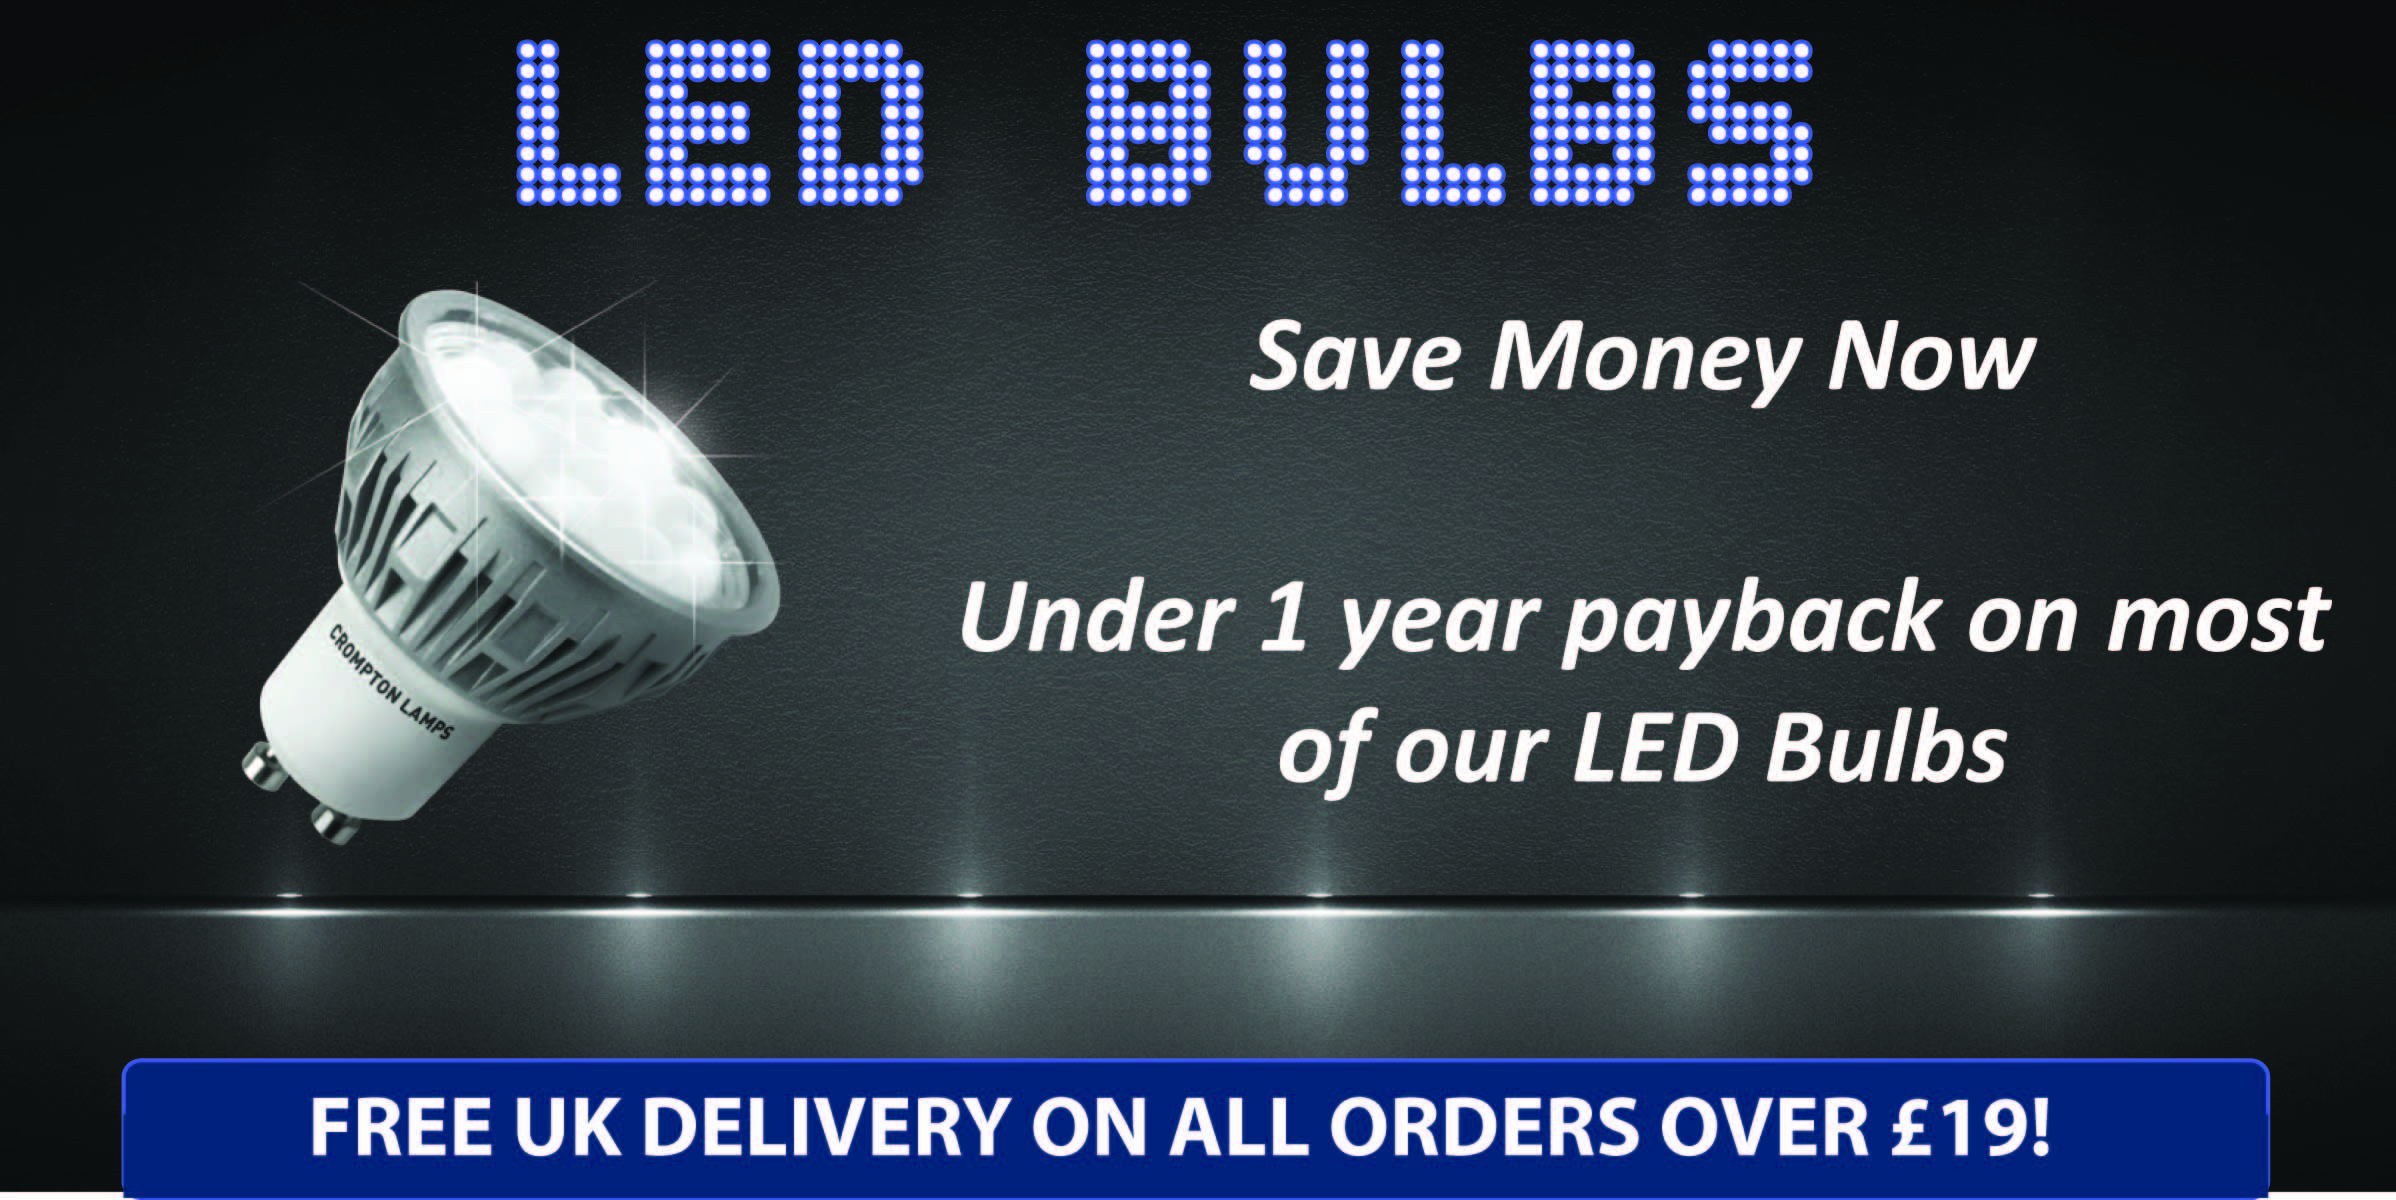 LED Bulbs, Save Money, 1 Year Payback